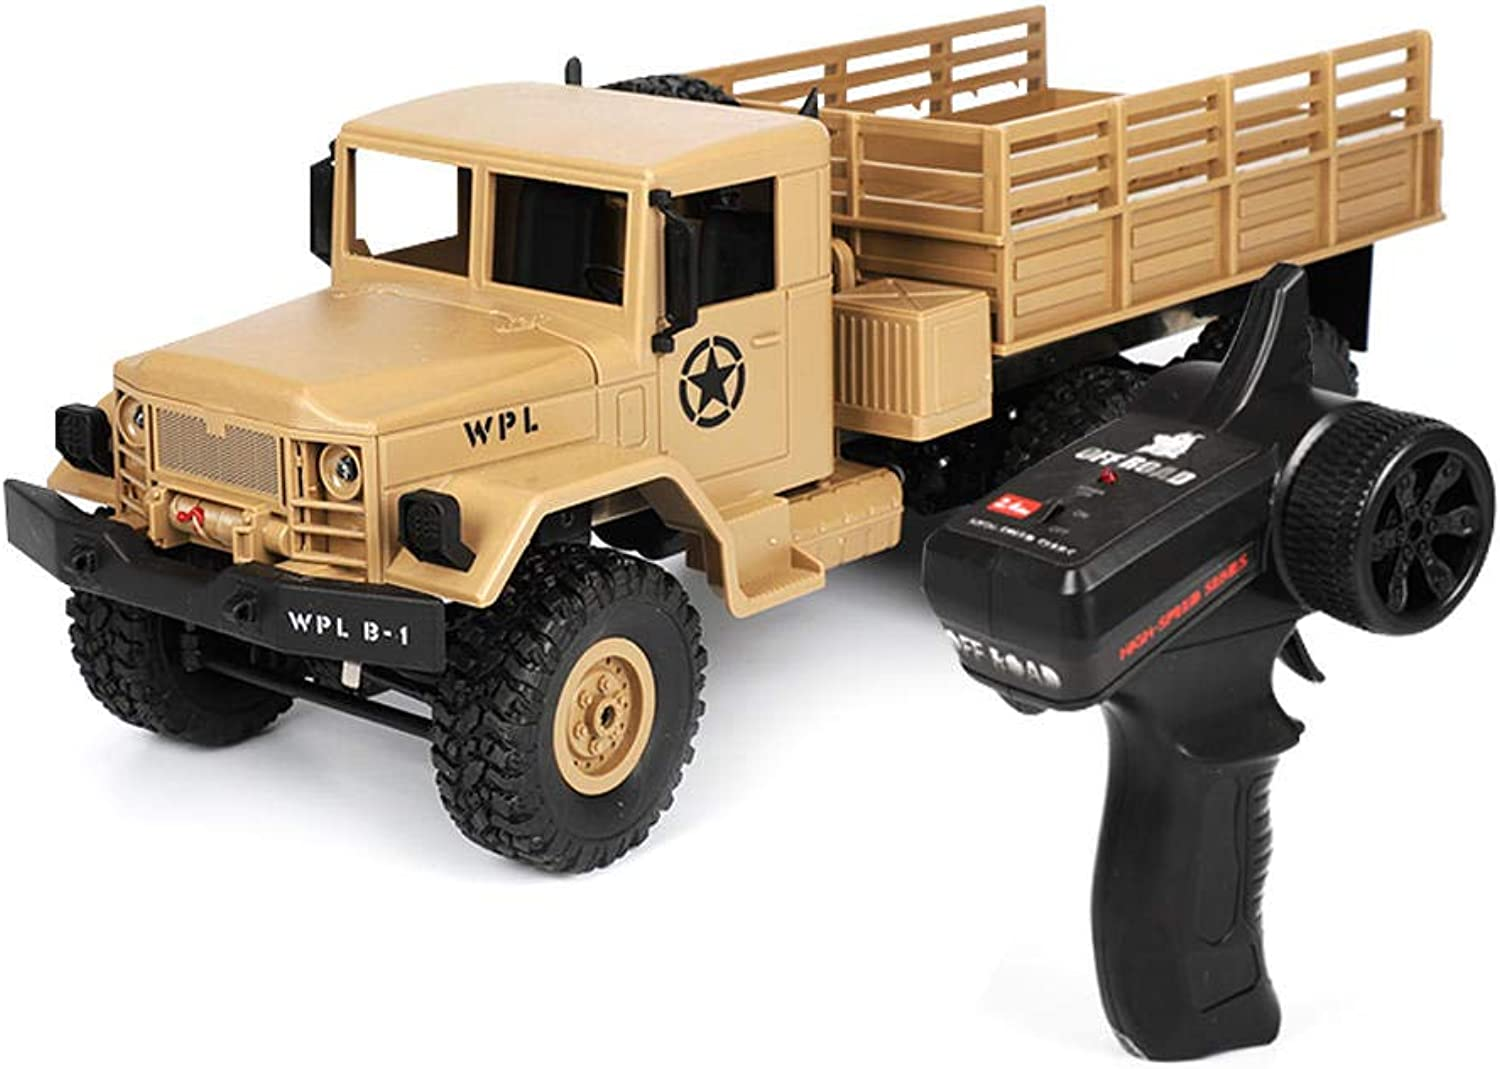 WPL B16 1 16 2.4G 6WD Truck Crawler Off Road RC Car With Light RTR COD